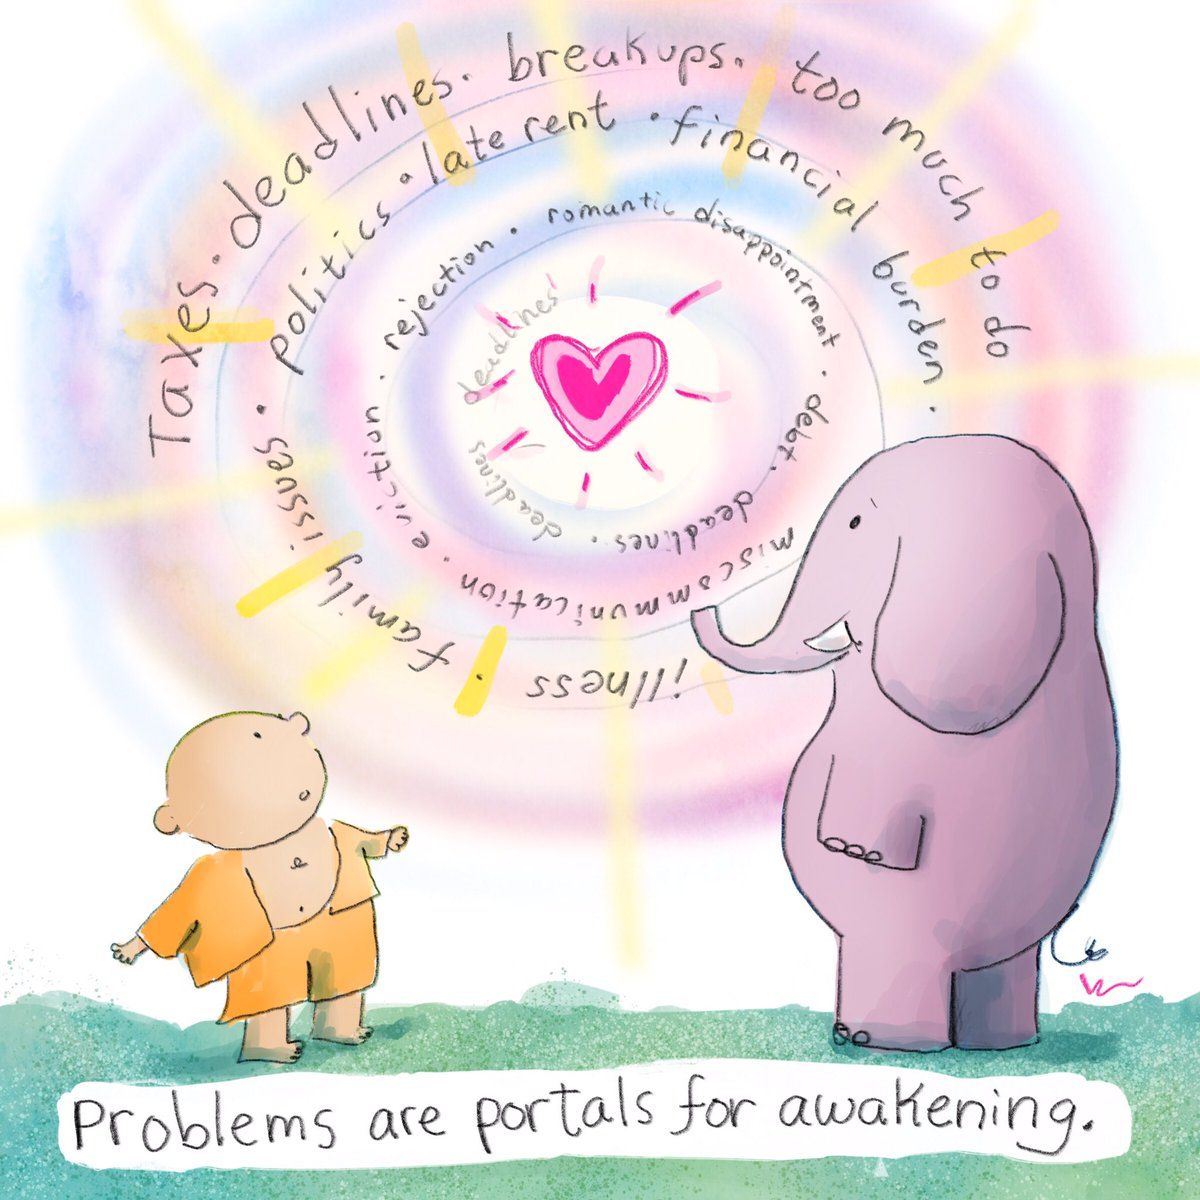 Problems are portals for awakening